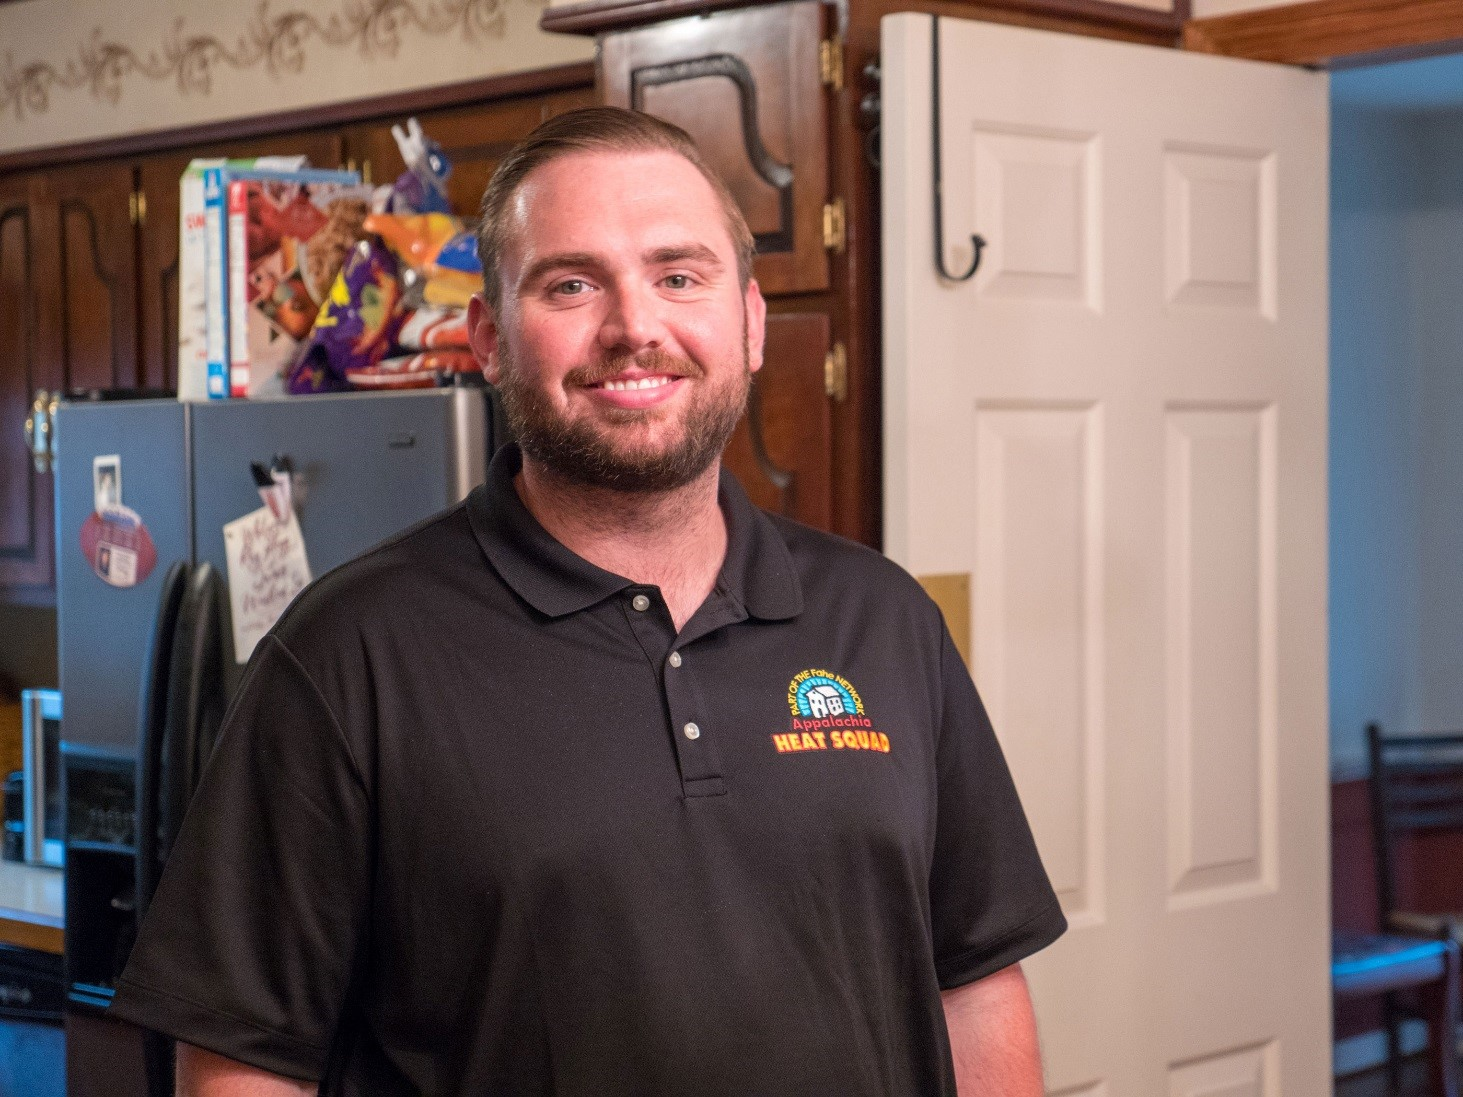 Appalachia HEAT Squad Relationship Manager Tyler Johnson on site during an AHS energy audit.